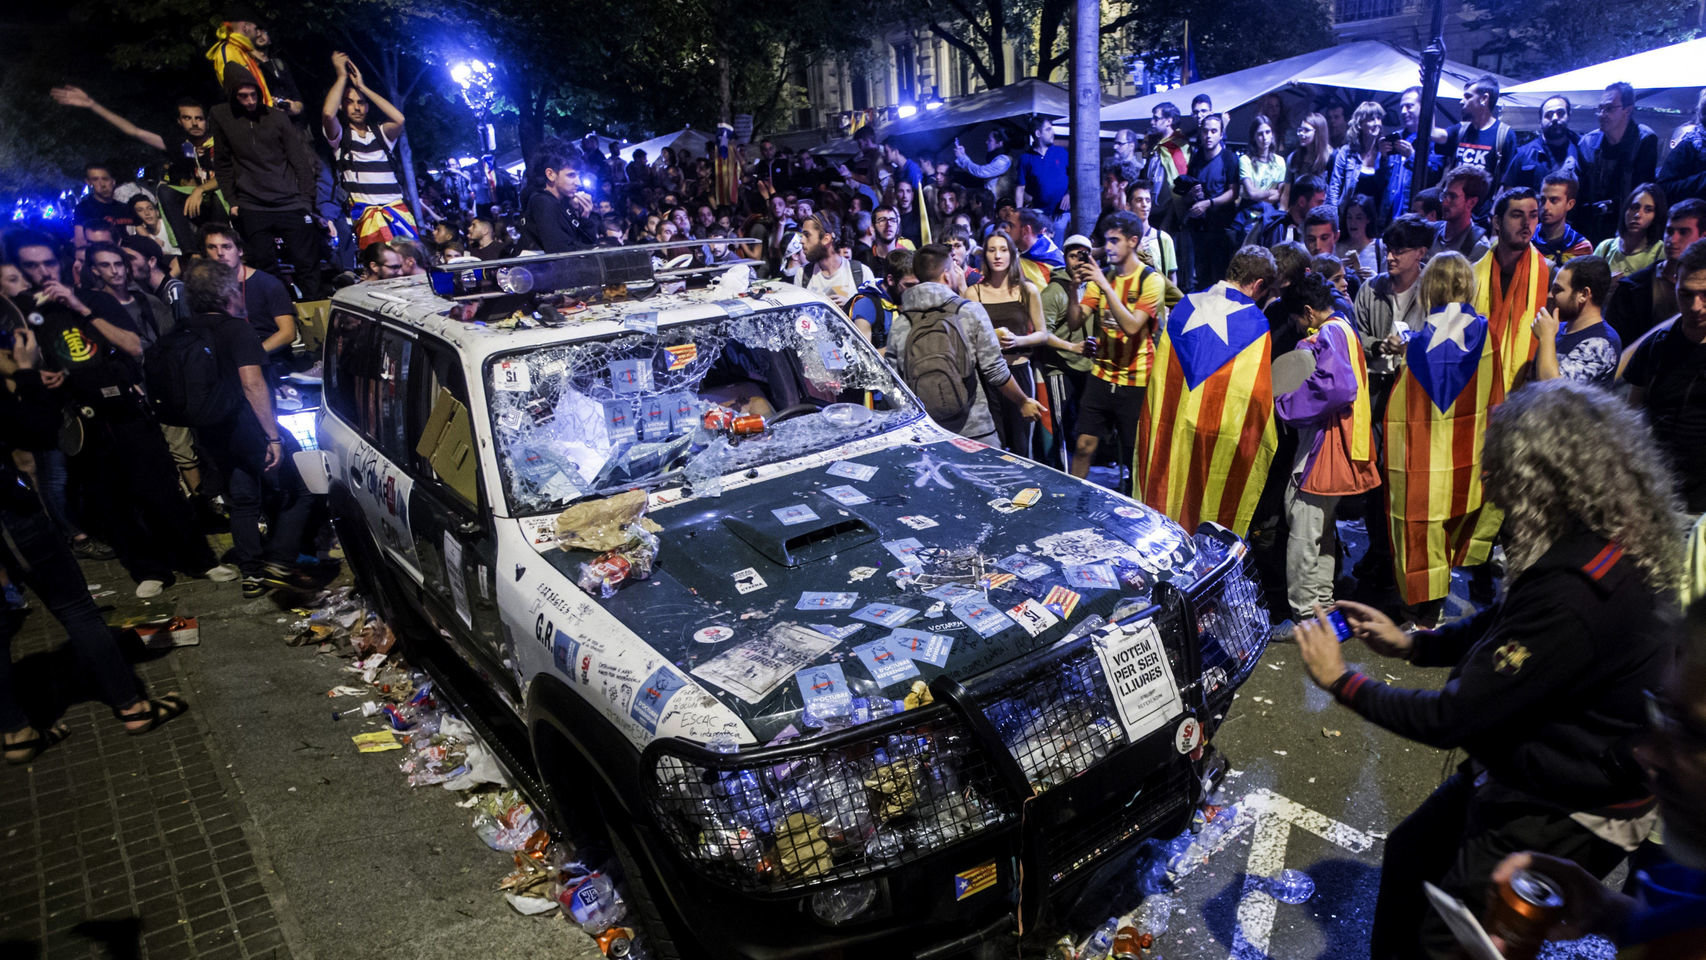 Un coche de la Guardia Civil atacado por los independentistas catalanes. EFE